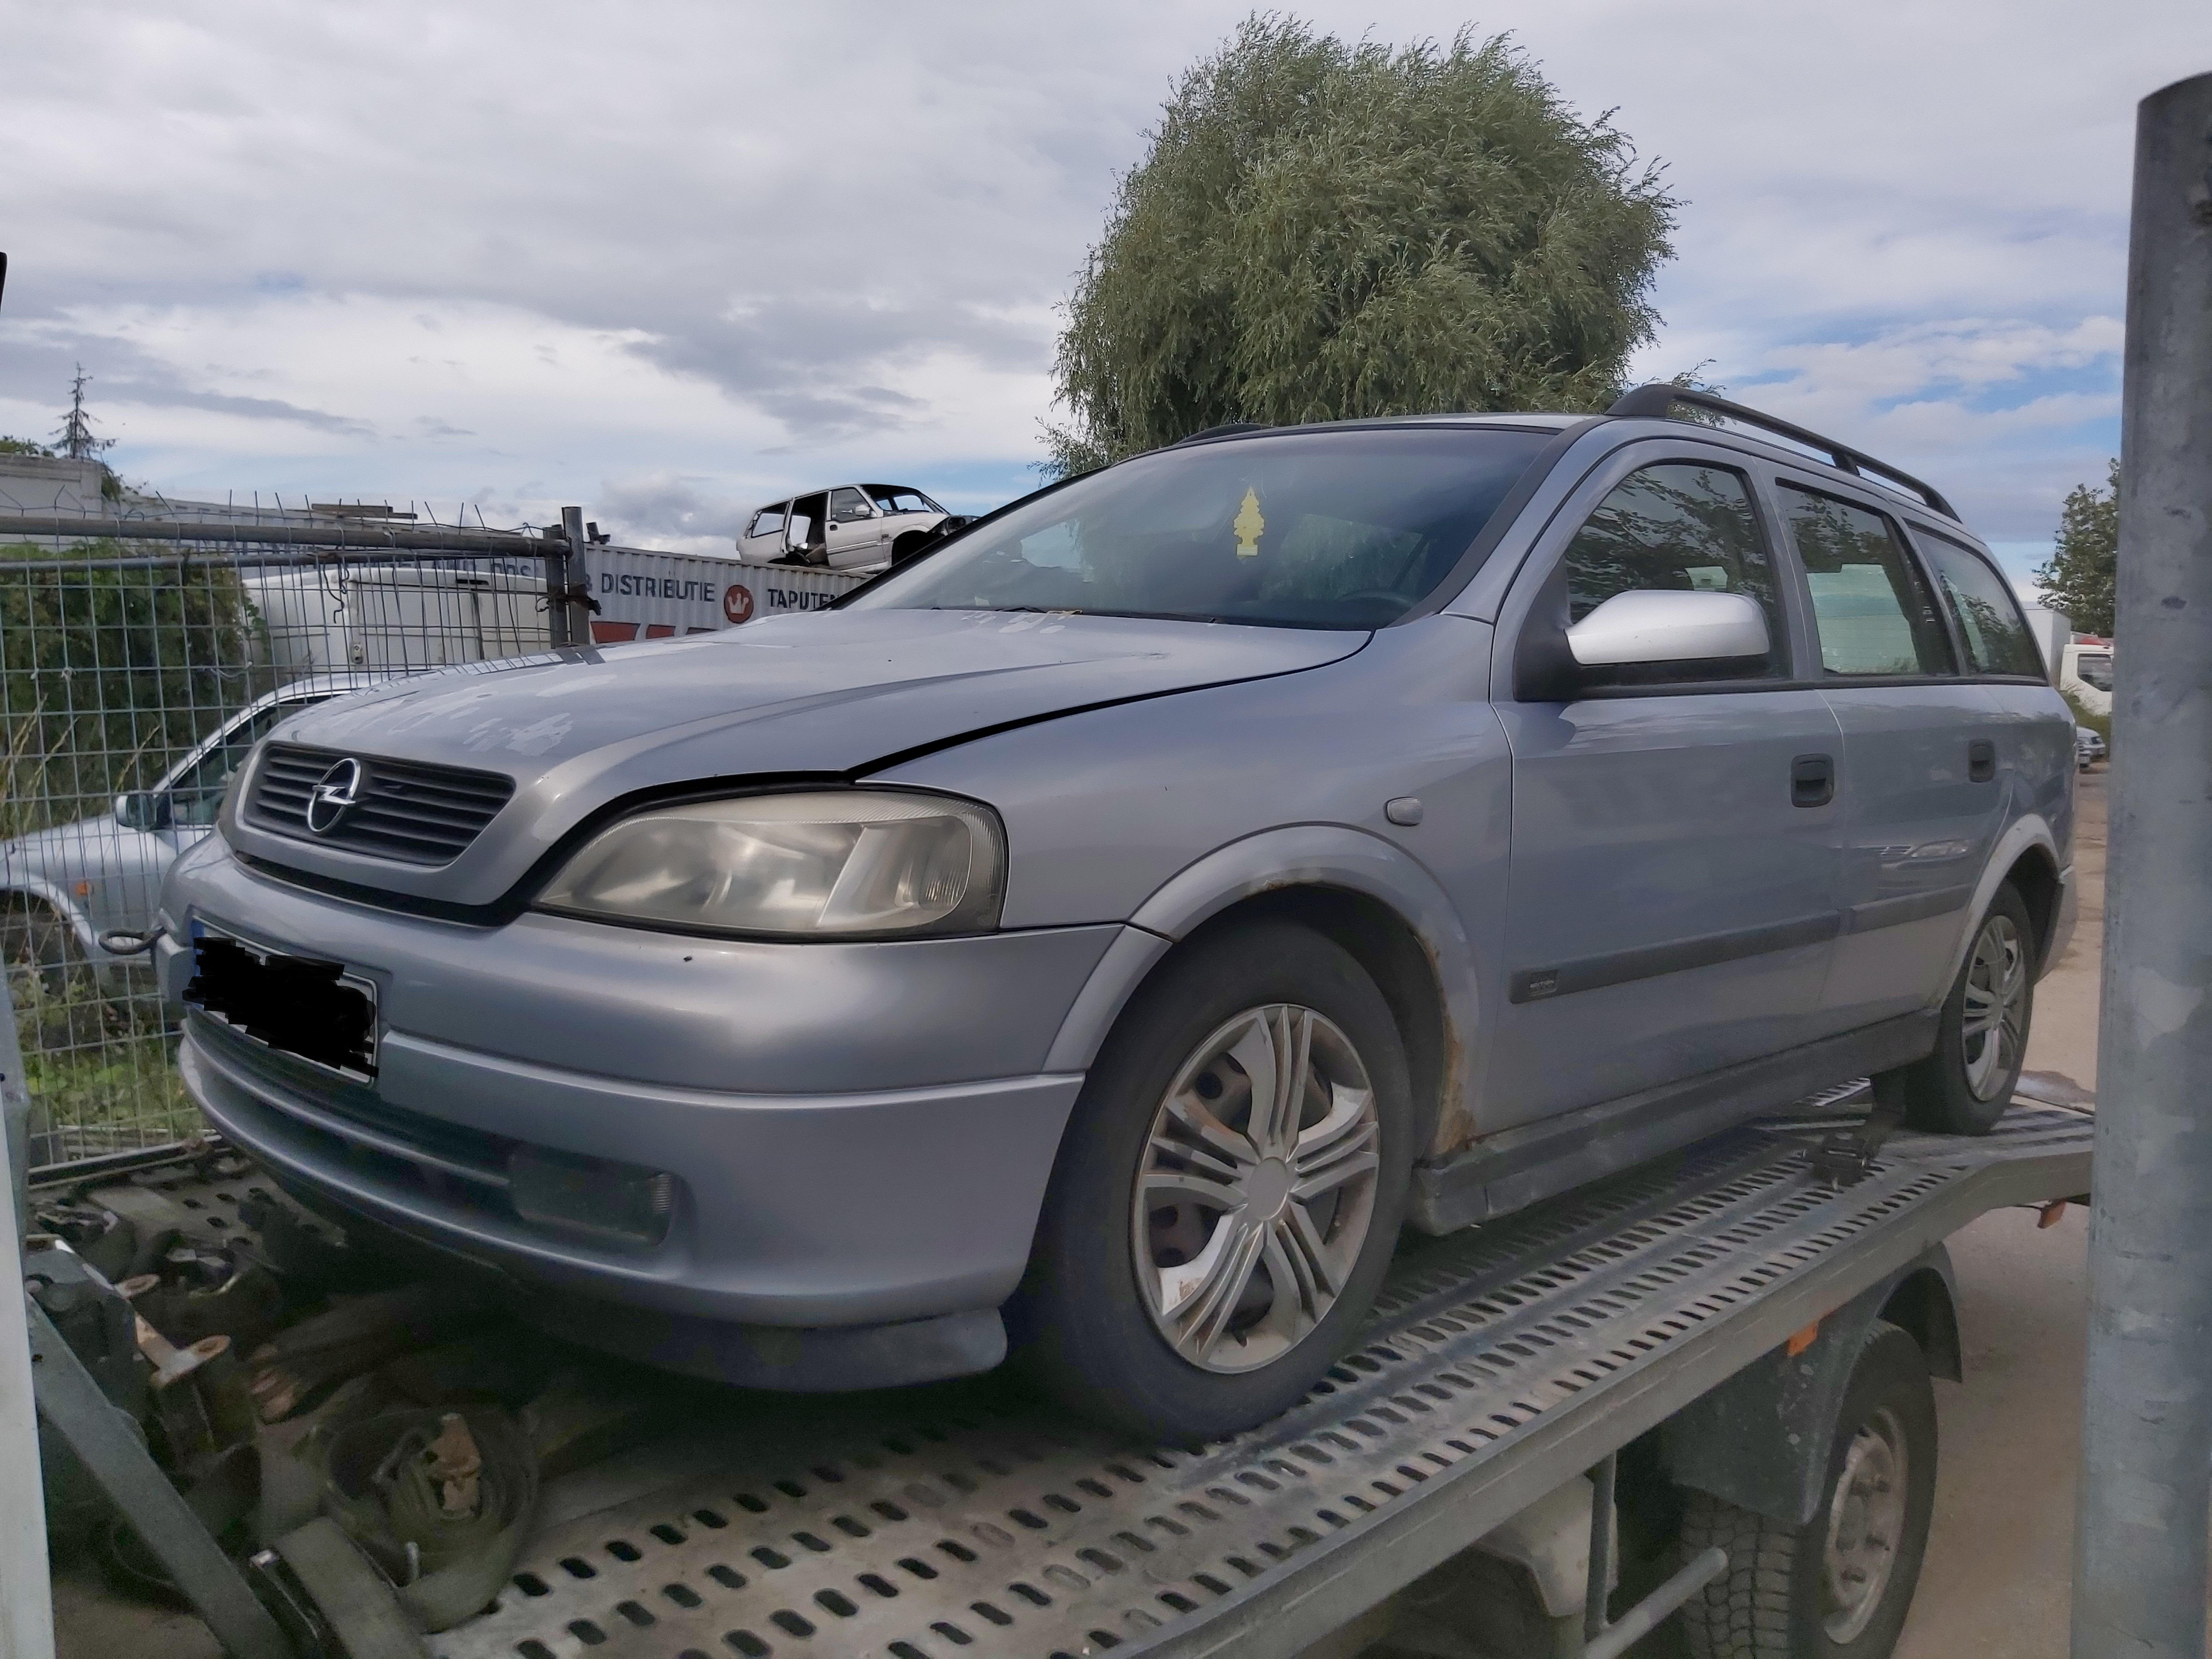 Foto-2 Opel Astra Astra, G 1998.09 - 2004.12 2000 Dyzelis 2.0